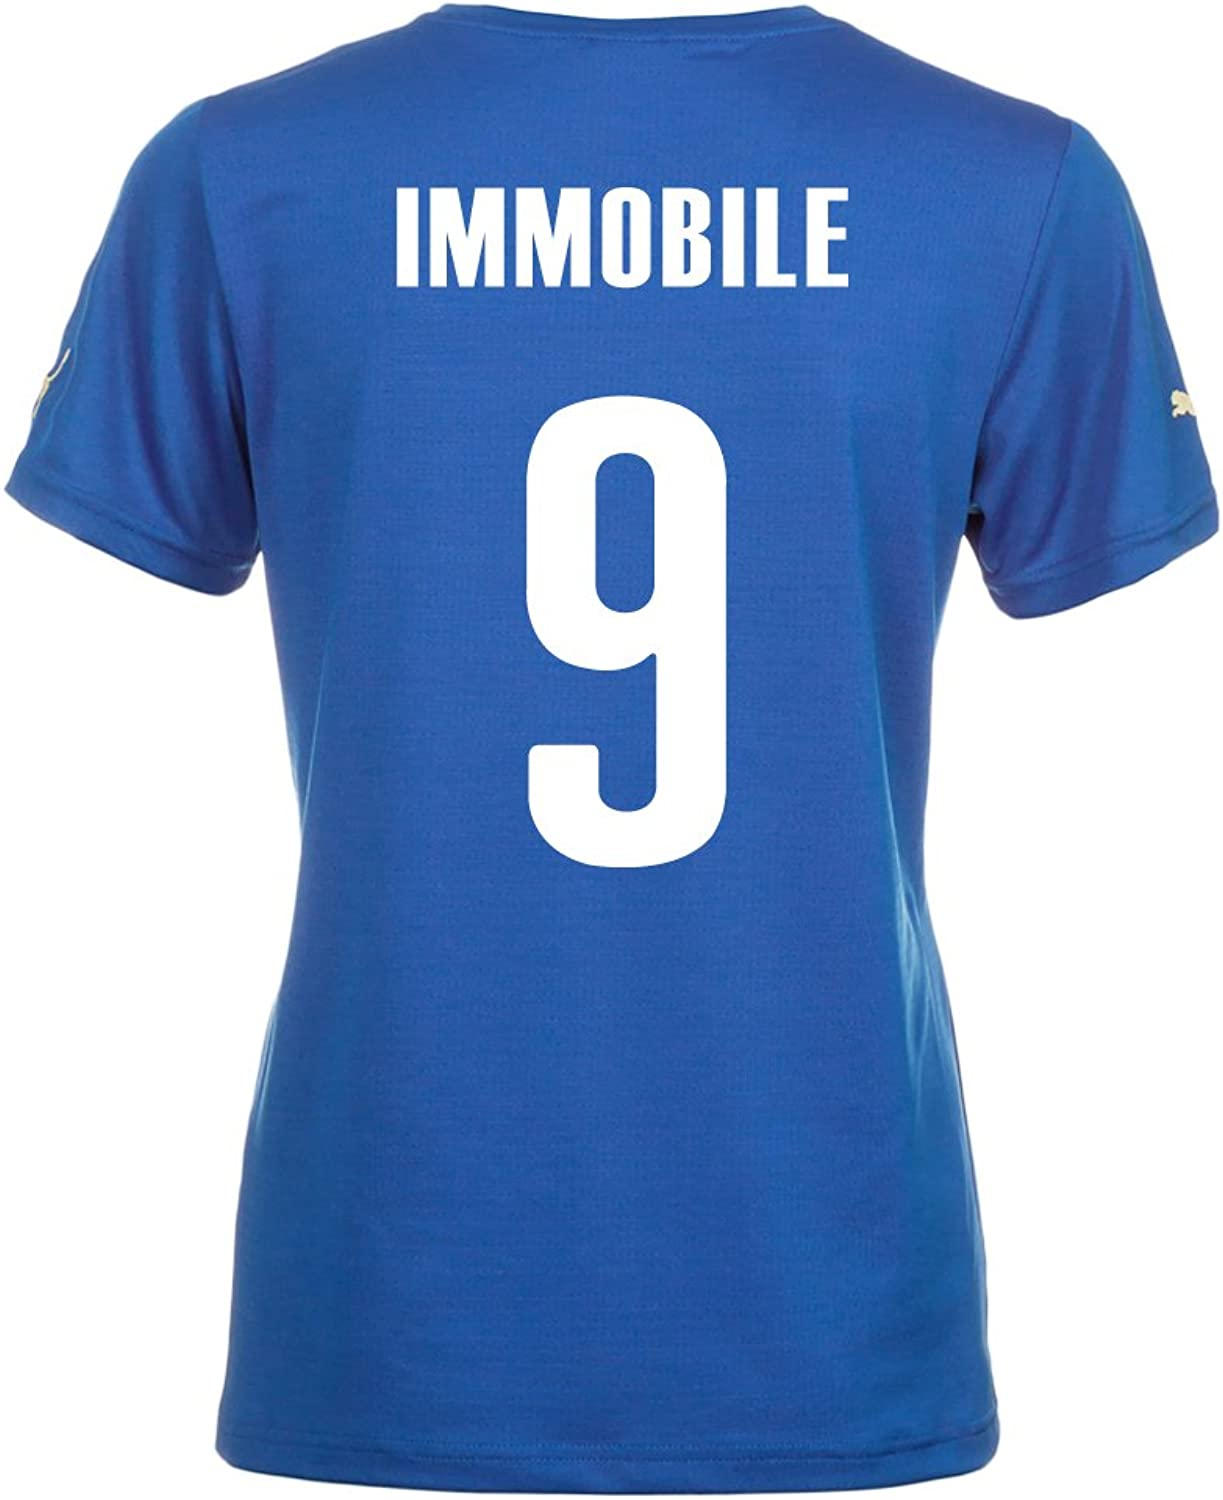 Puma IMMOBLE  9  Home Jersey World Cup 2014 (Women)